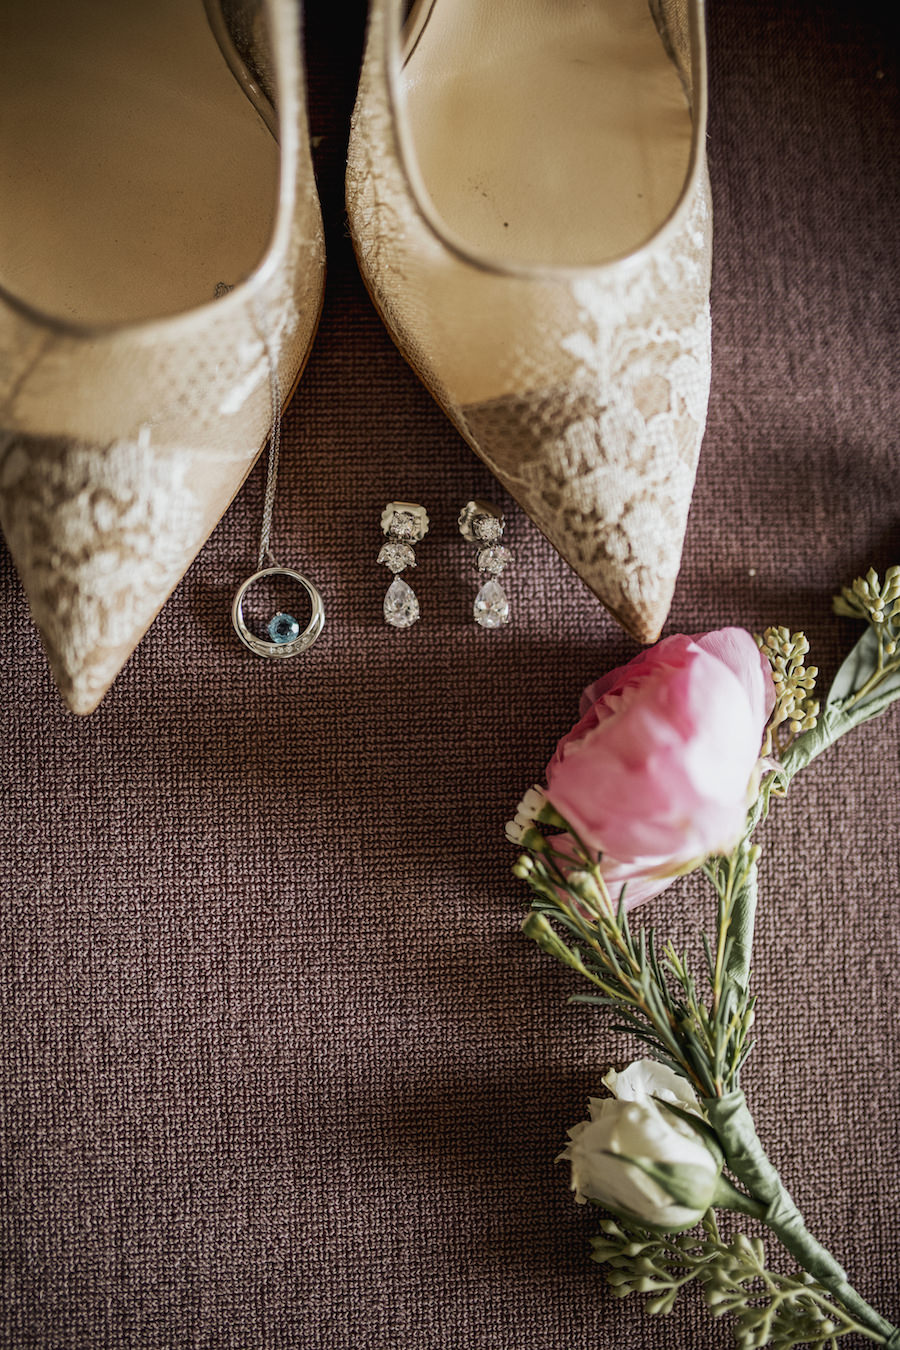 Wedding Getting Ready Details with Neutral Lace Bridal Heels and Rhinestone Jewelry with Pink and Ivory Flower Crown   Tampa Bay Wedding Planner NK Productions